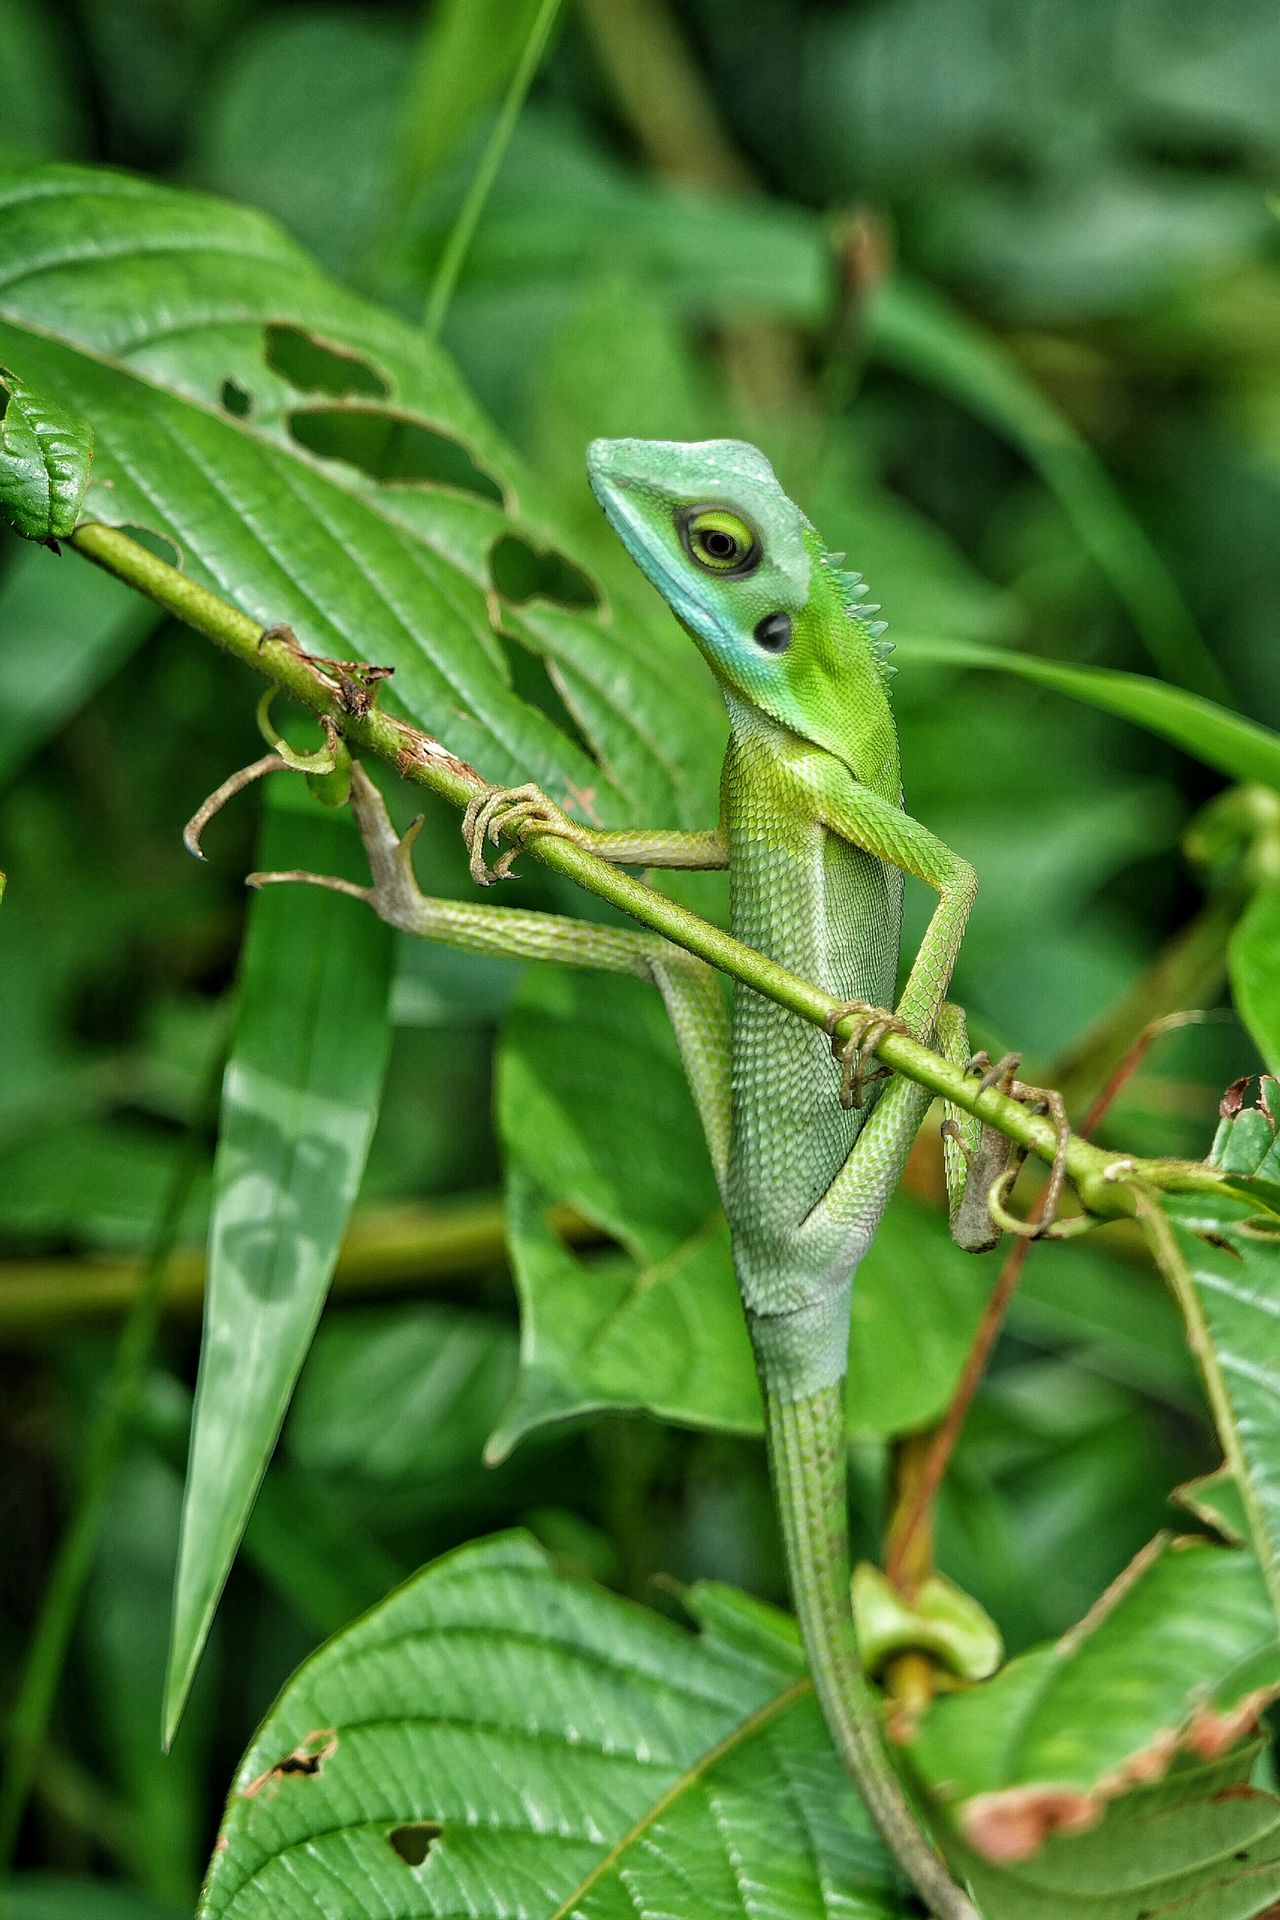 Long Tailed Green Lizard Lizard Eyeem Lizards Lizards Lizard Watching EyeEm Nature Lover EyeEmBestPics EyeEm Best Shots - Nature EyeEm Best Shots Capture The Moment